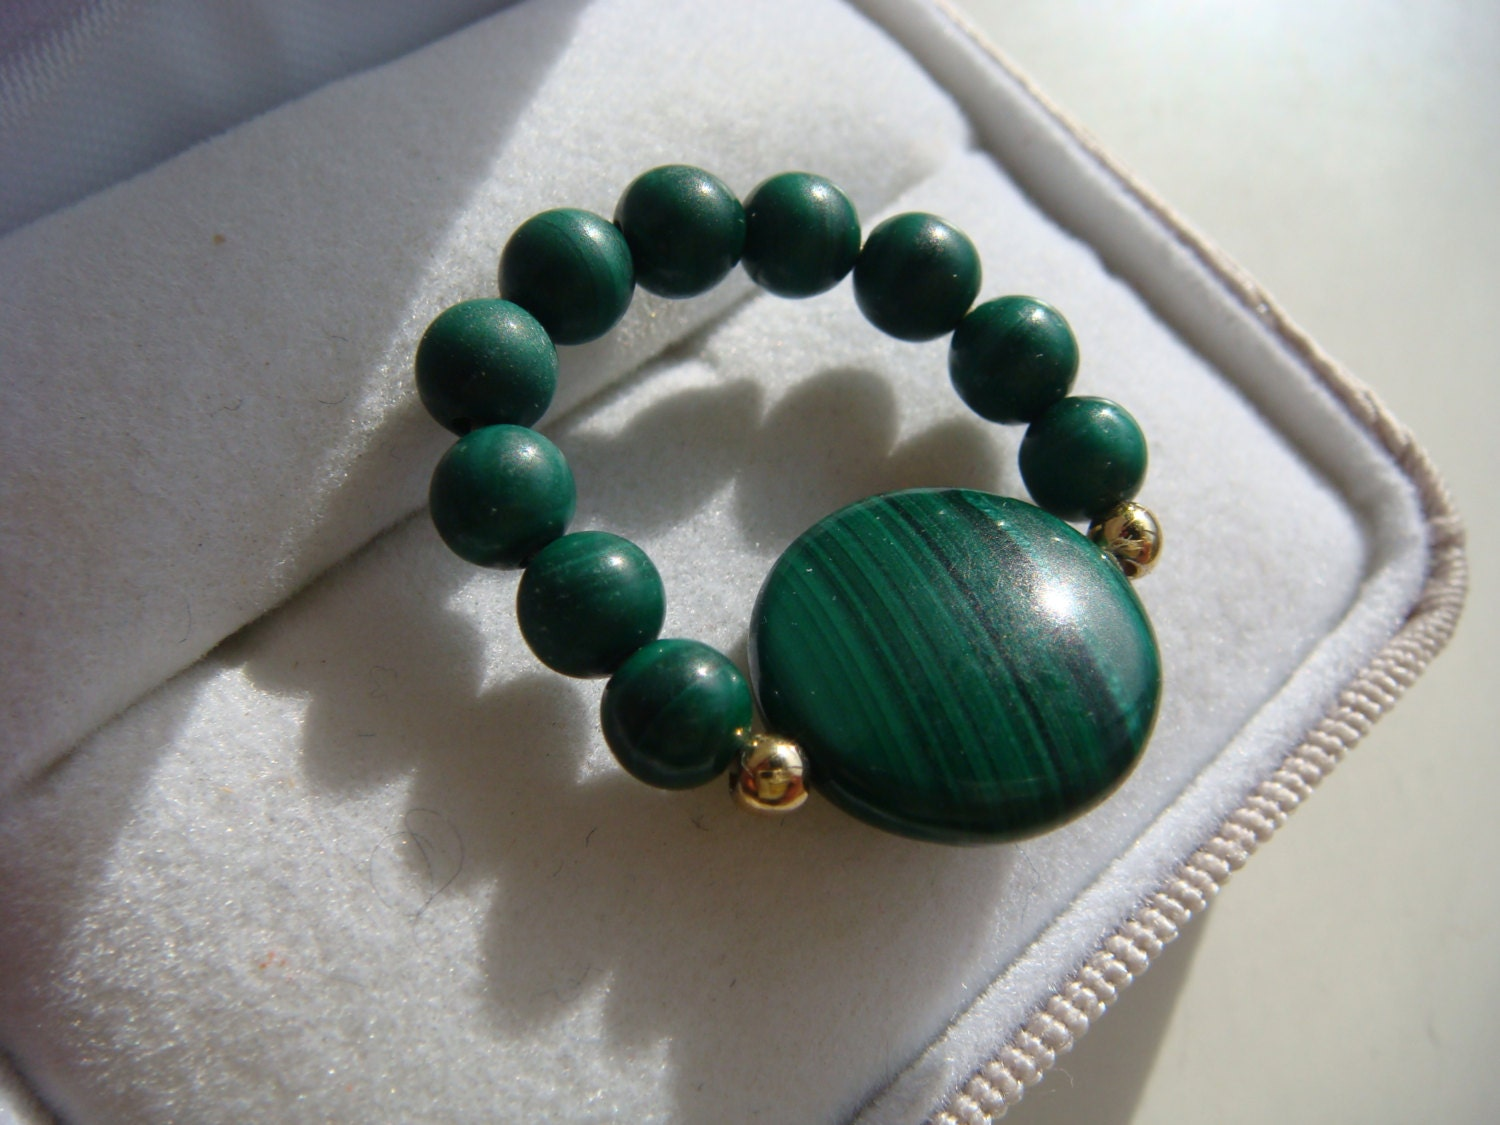 Green Lace Agate Bead Ring